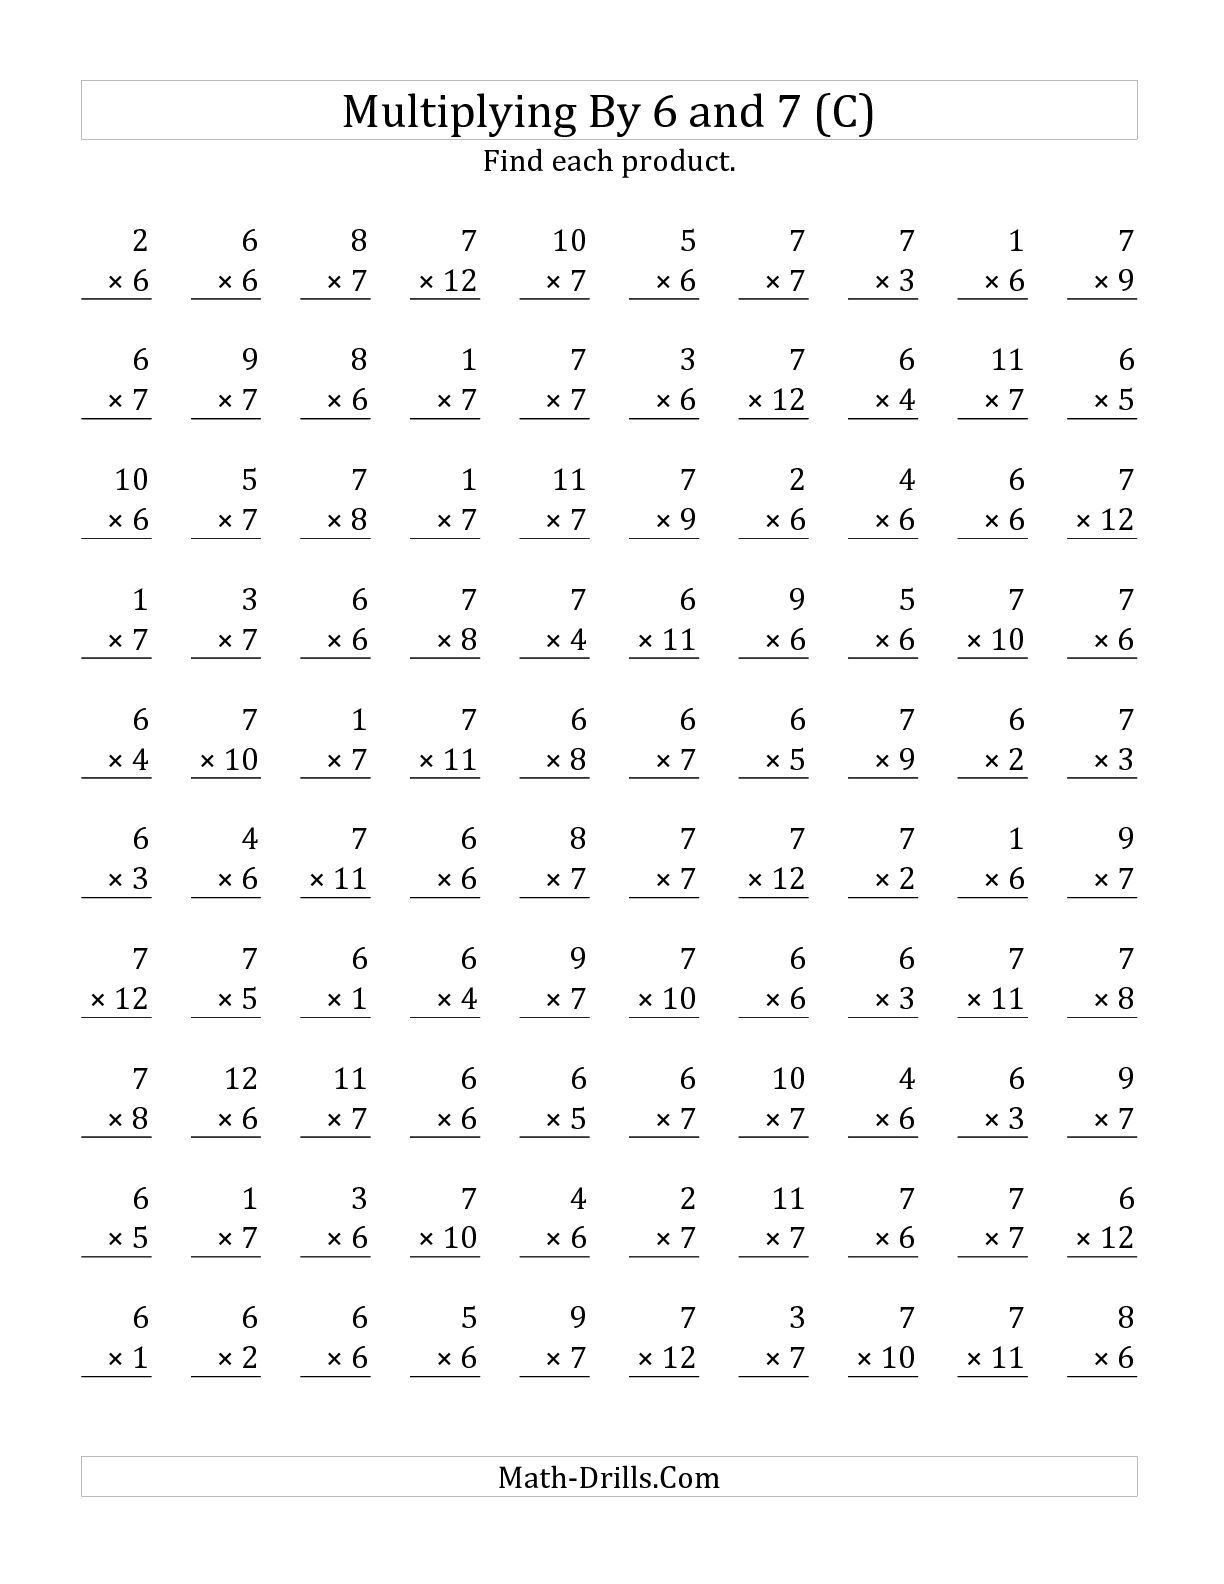 the multiplying  to  by  and  c math worksheet from the  the multiplying  to  by  and  c math worksheet from the multiplication  worksheets page at mathdrillscom